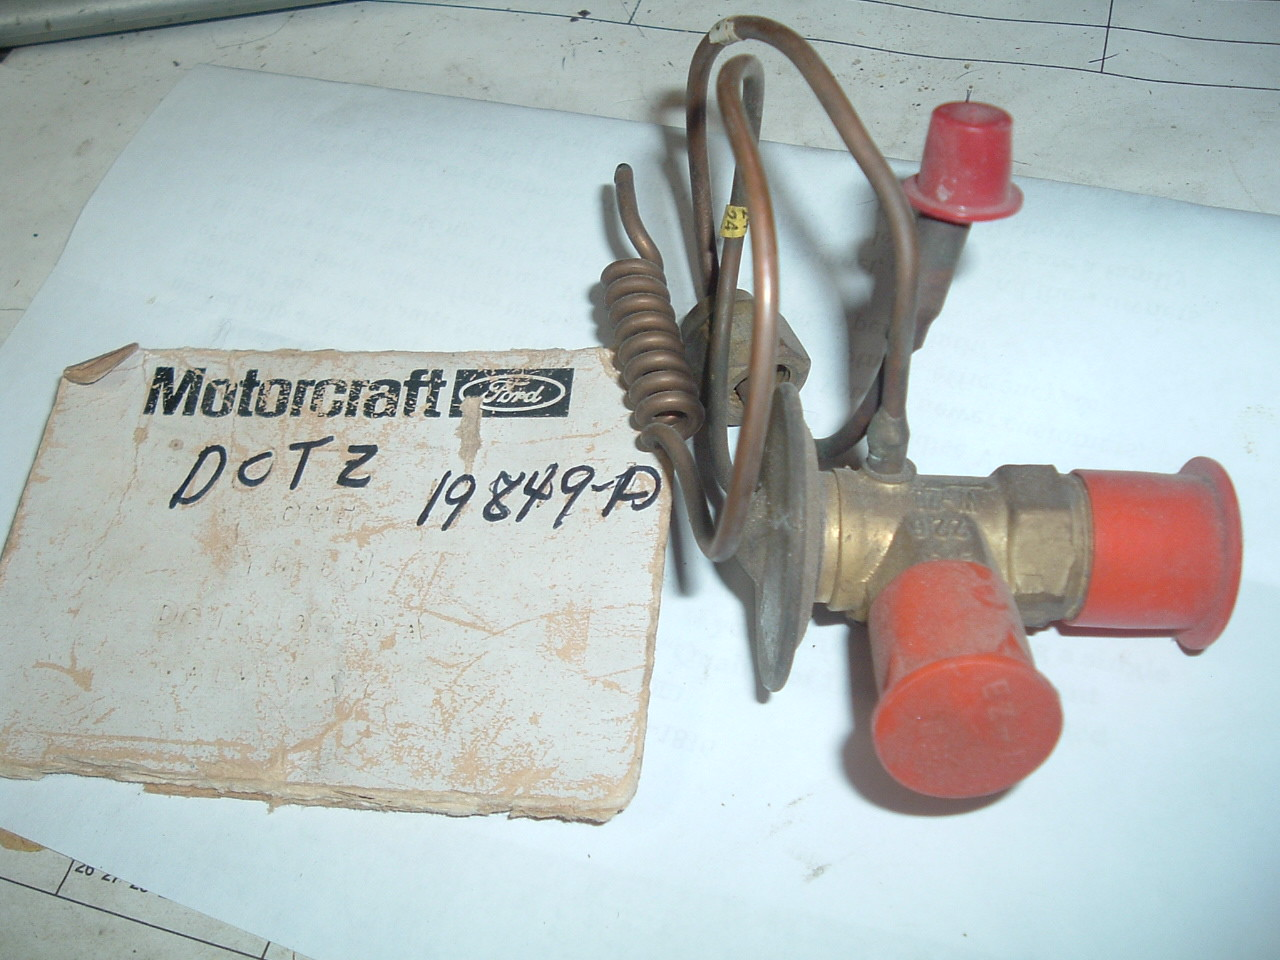 1970 71 ford truck air conditioning expansion valve nos ford # D0TZ-19849-A (z d0tz19849a)